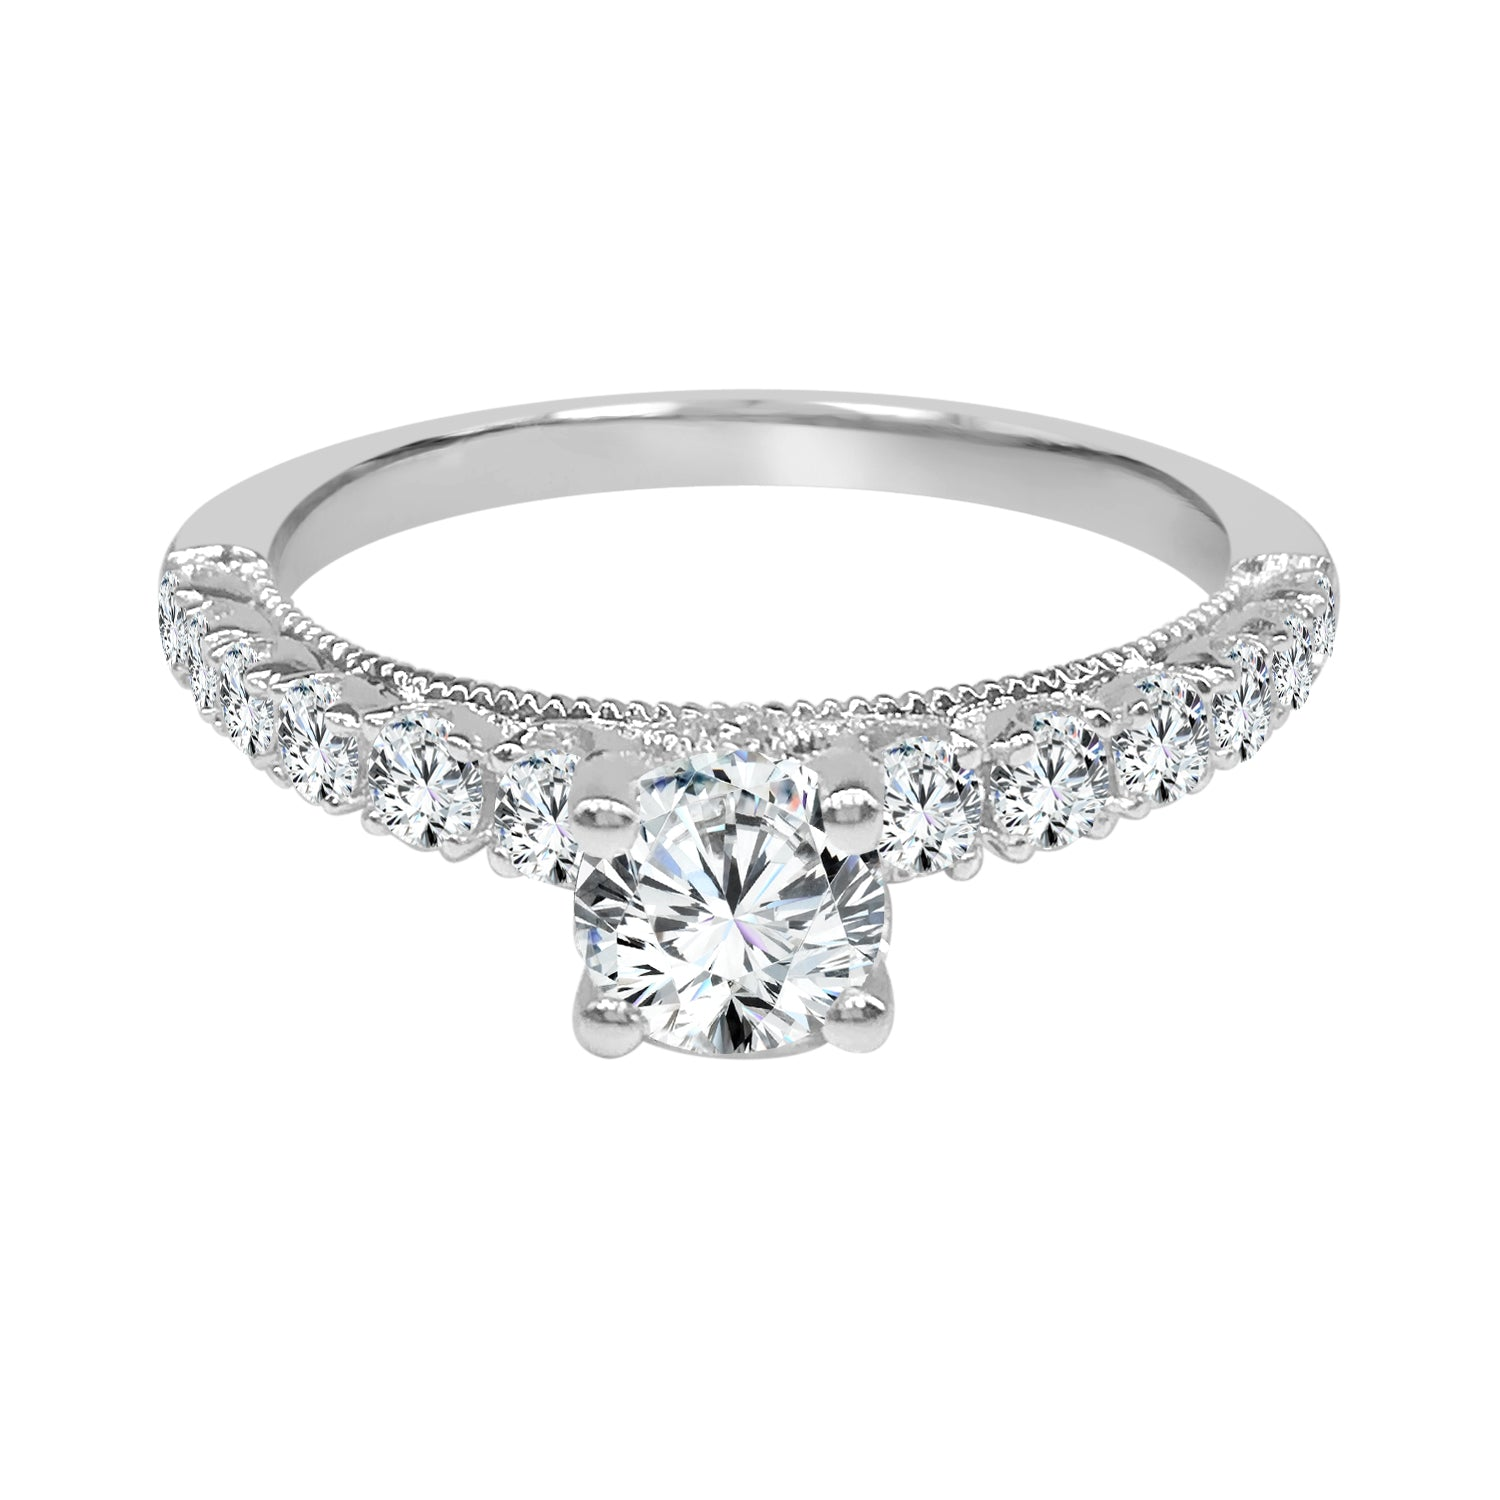 3237d2d4ad0e3 Complete Engagement Rings – A&J Jewelers - Snellville Jeweler